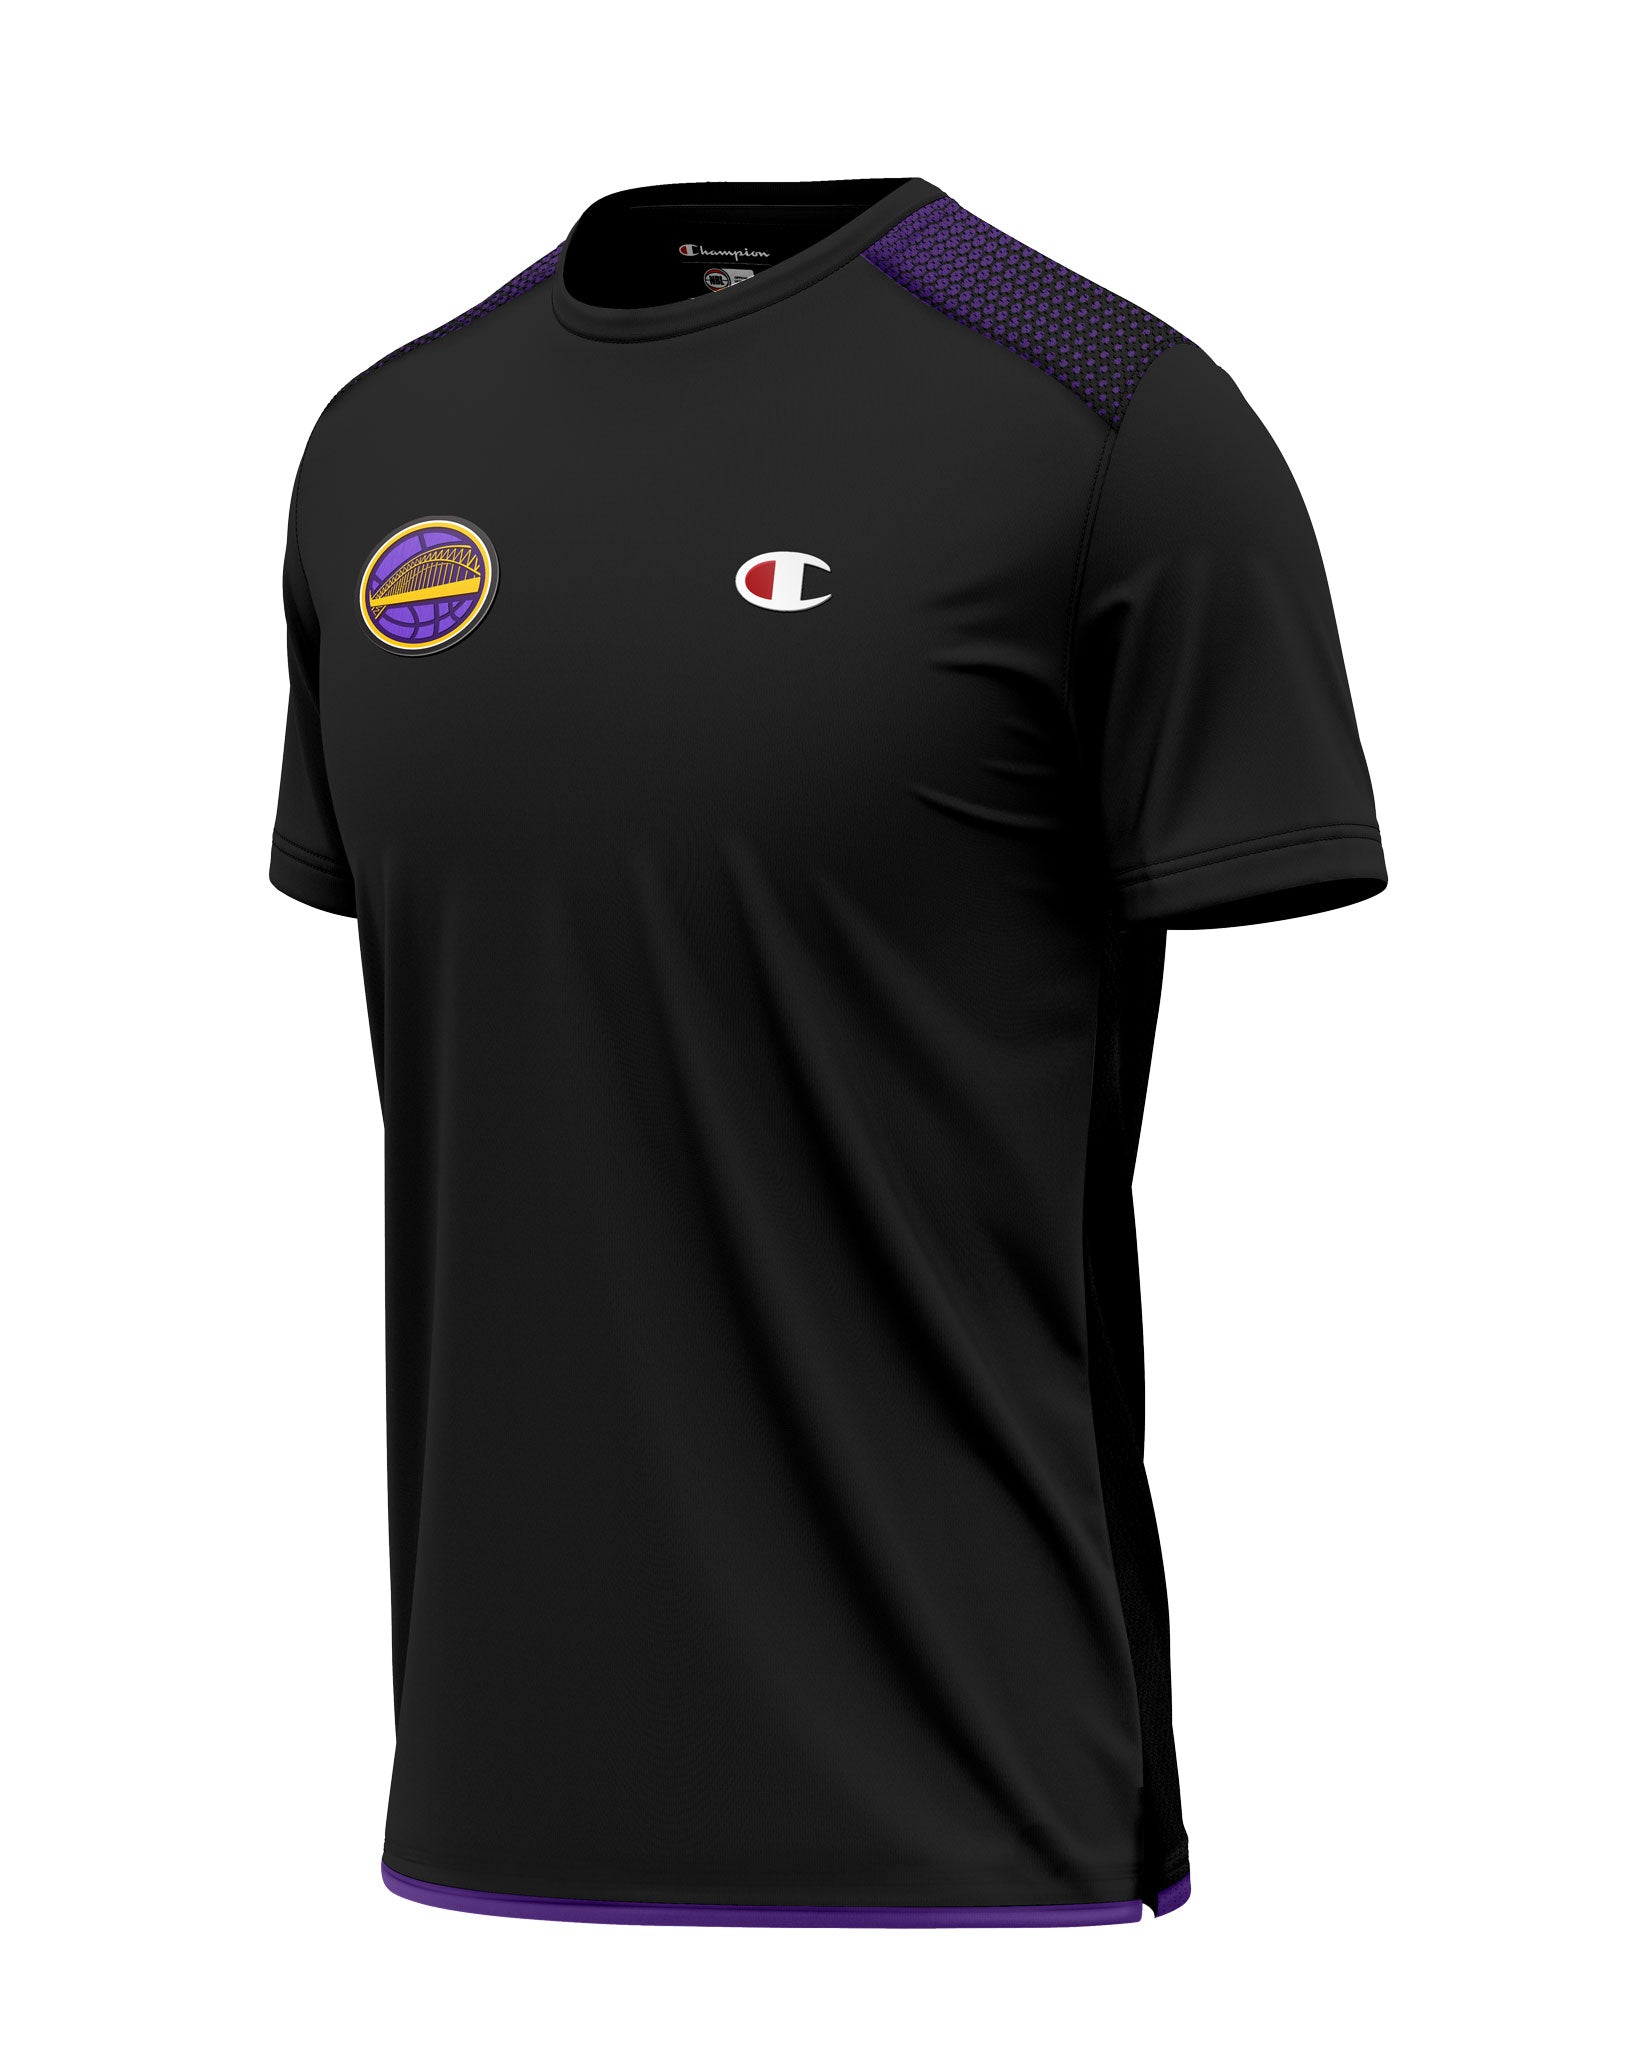 Sydney Kings 20/21 Performance T-Shirt